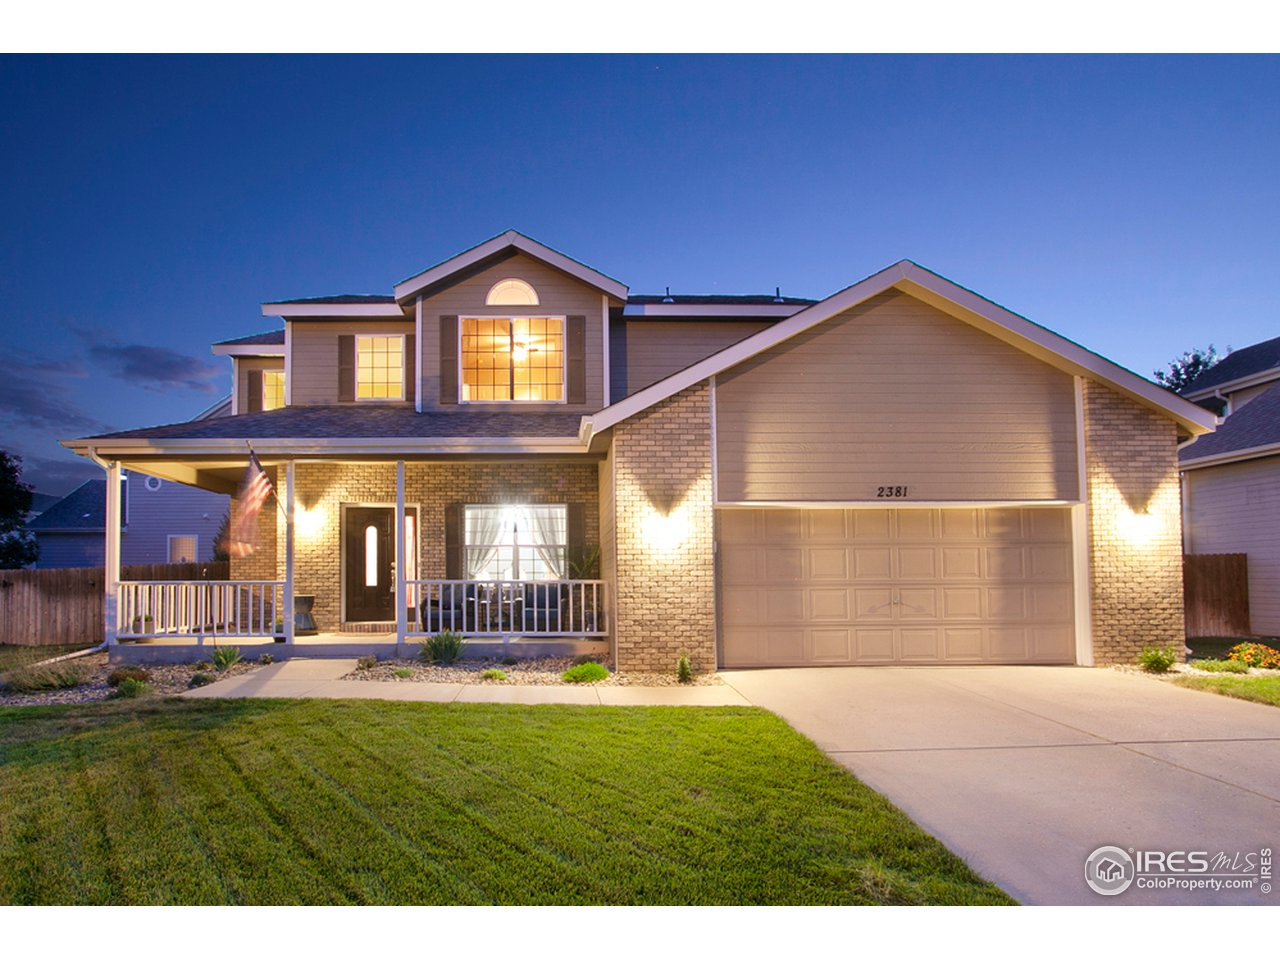 2381 43rd Ave Ct, Greeley CO 80634